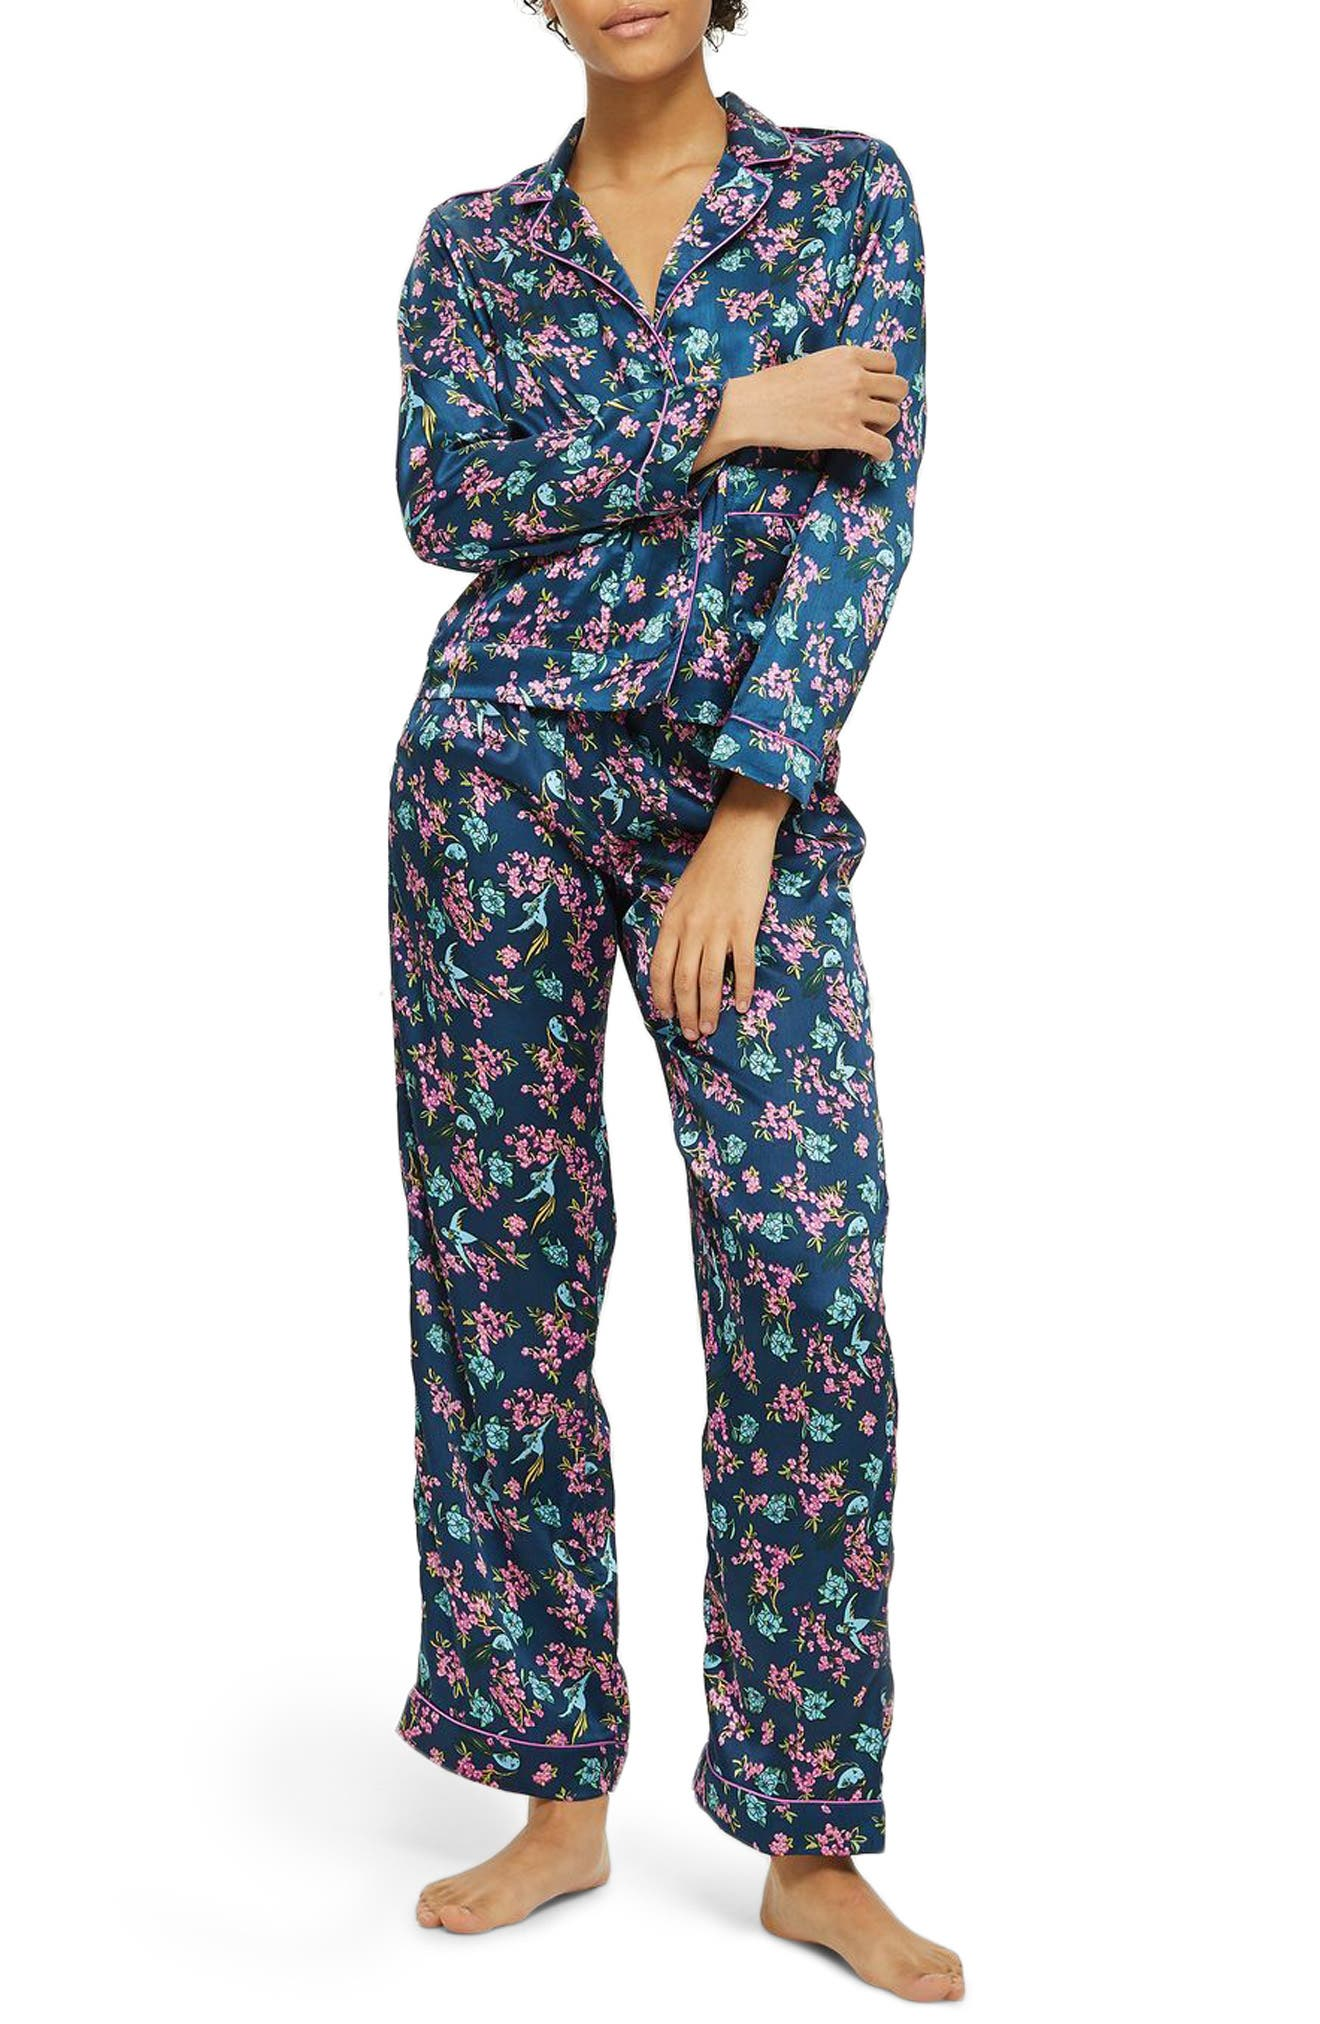 Bird Satin Pajamas,                             Main thumbnail 1, color,                             Blue Multi